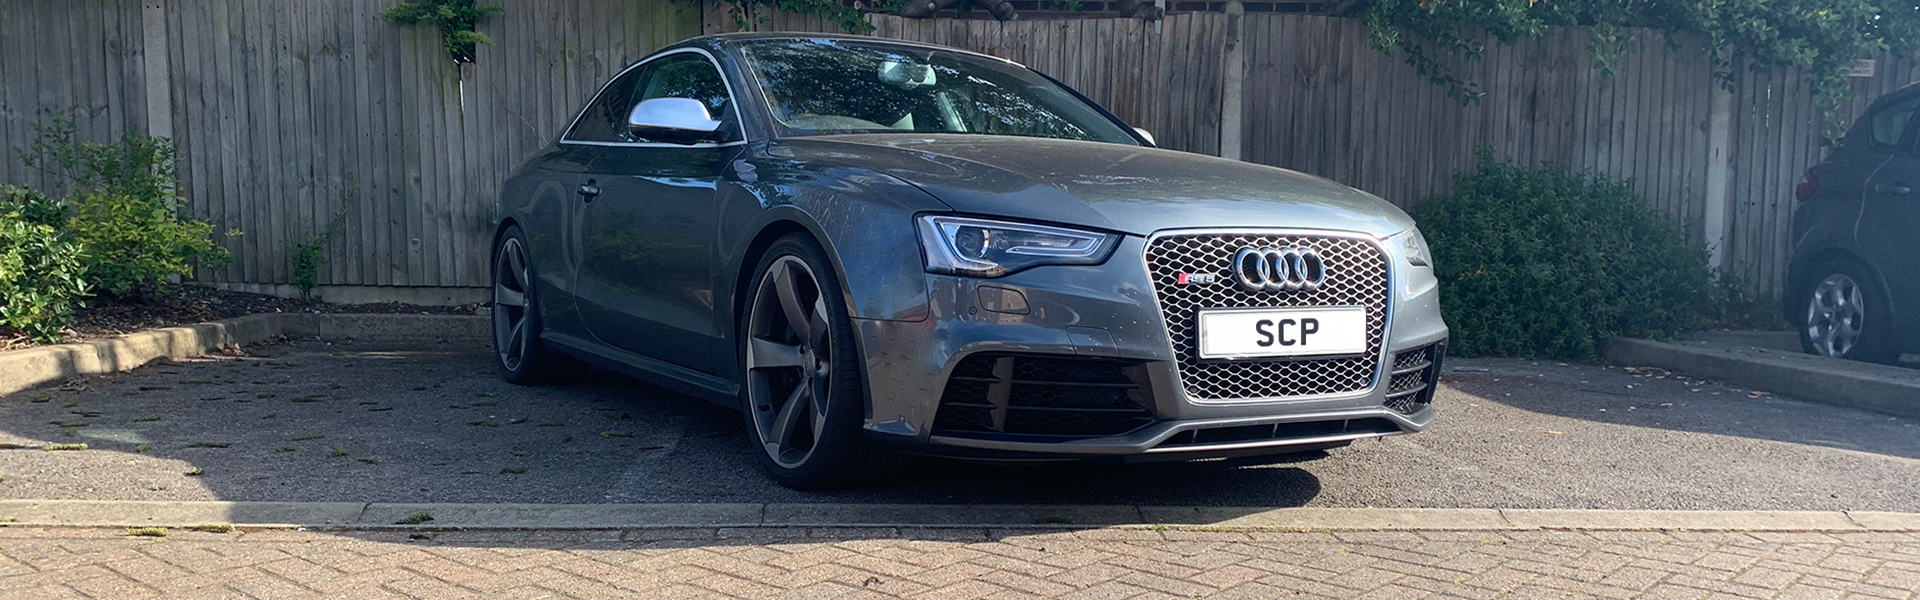 Audi RS5 reborn with a new raucous soundtrack